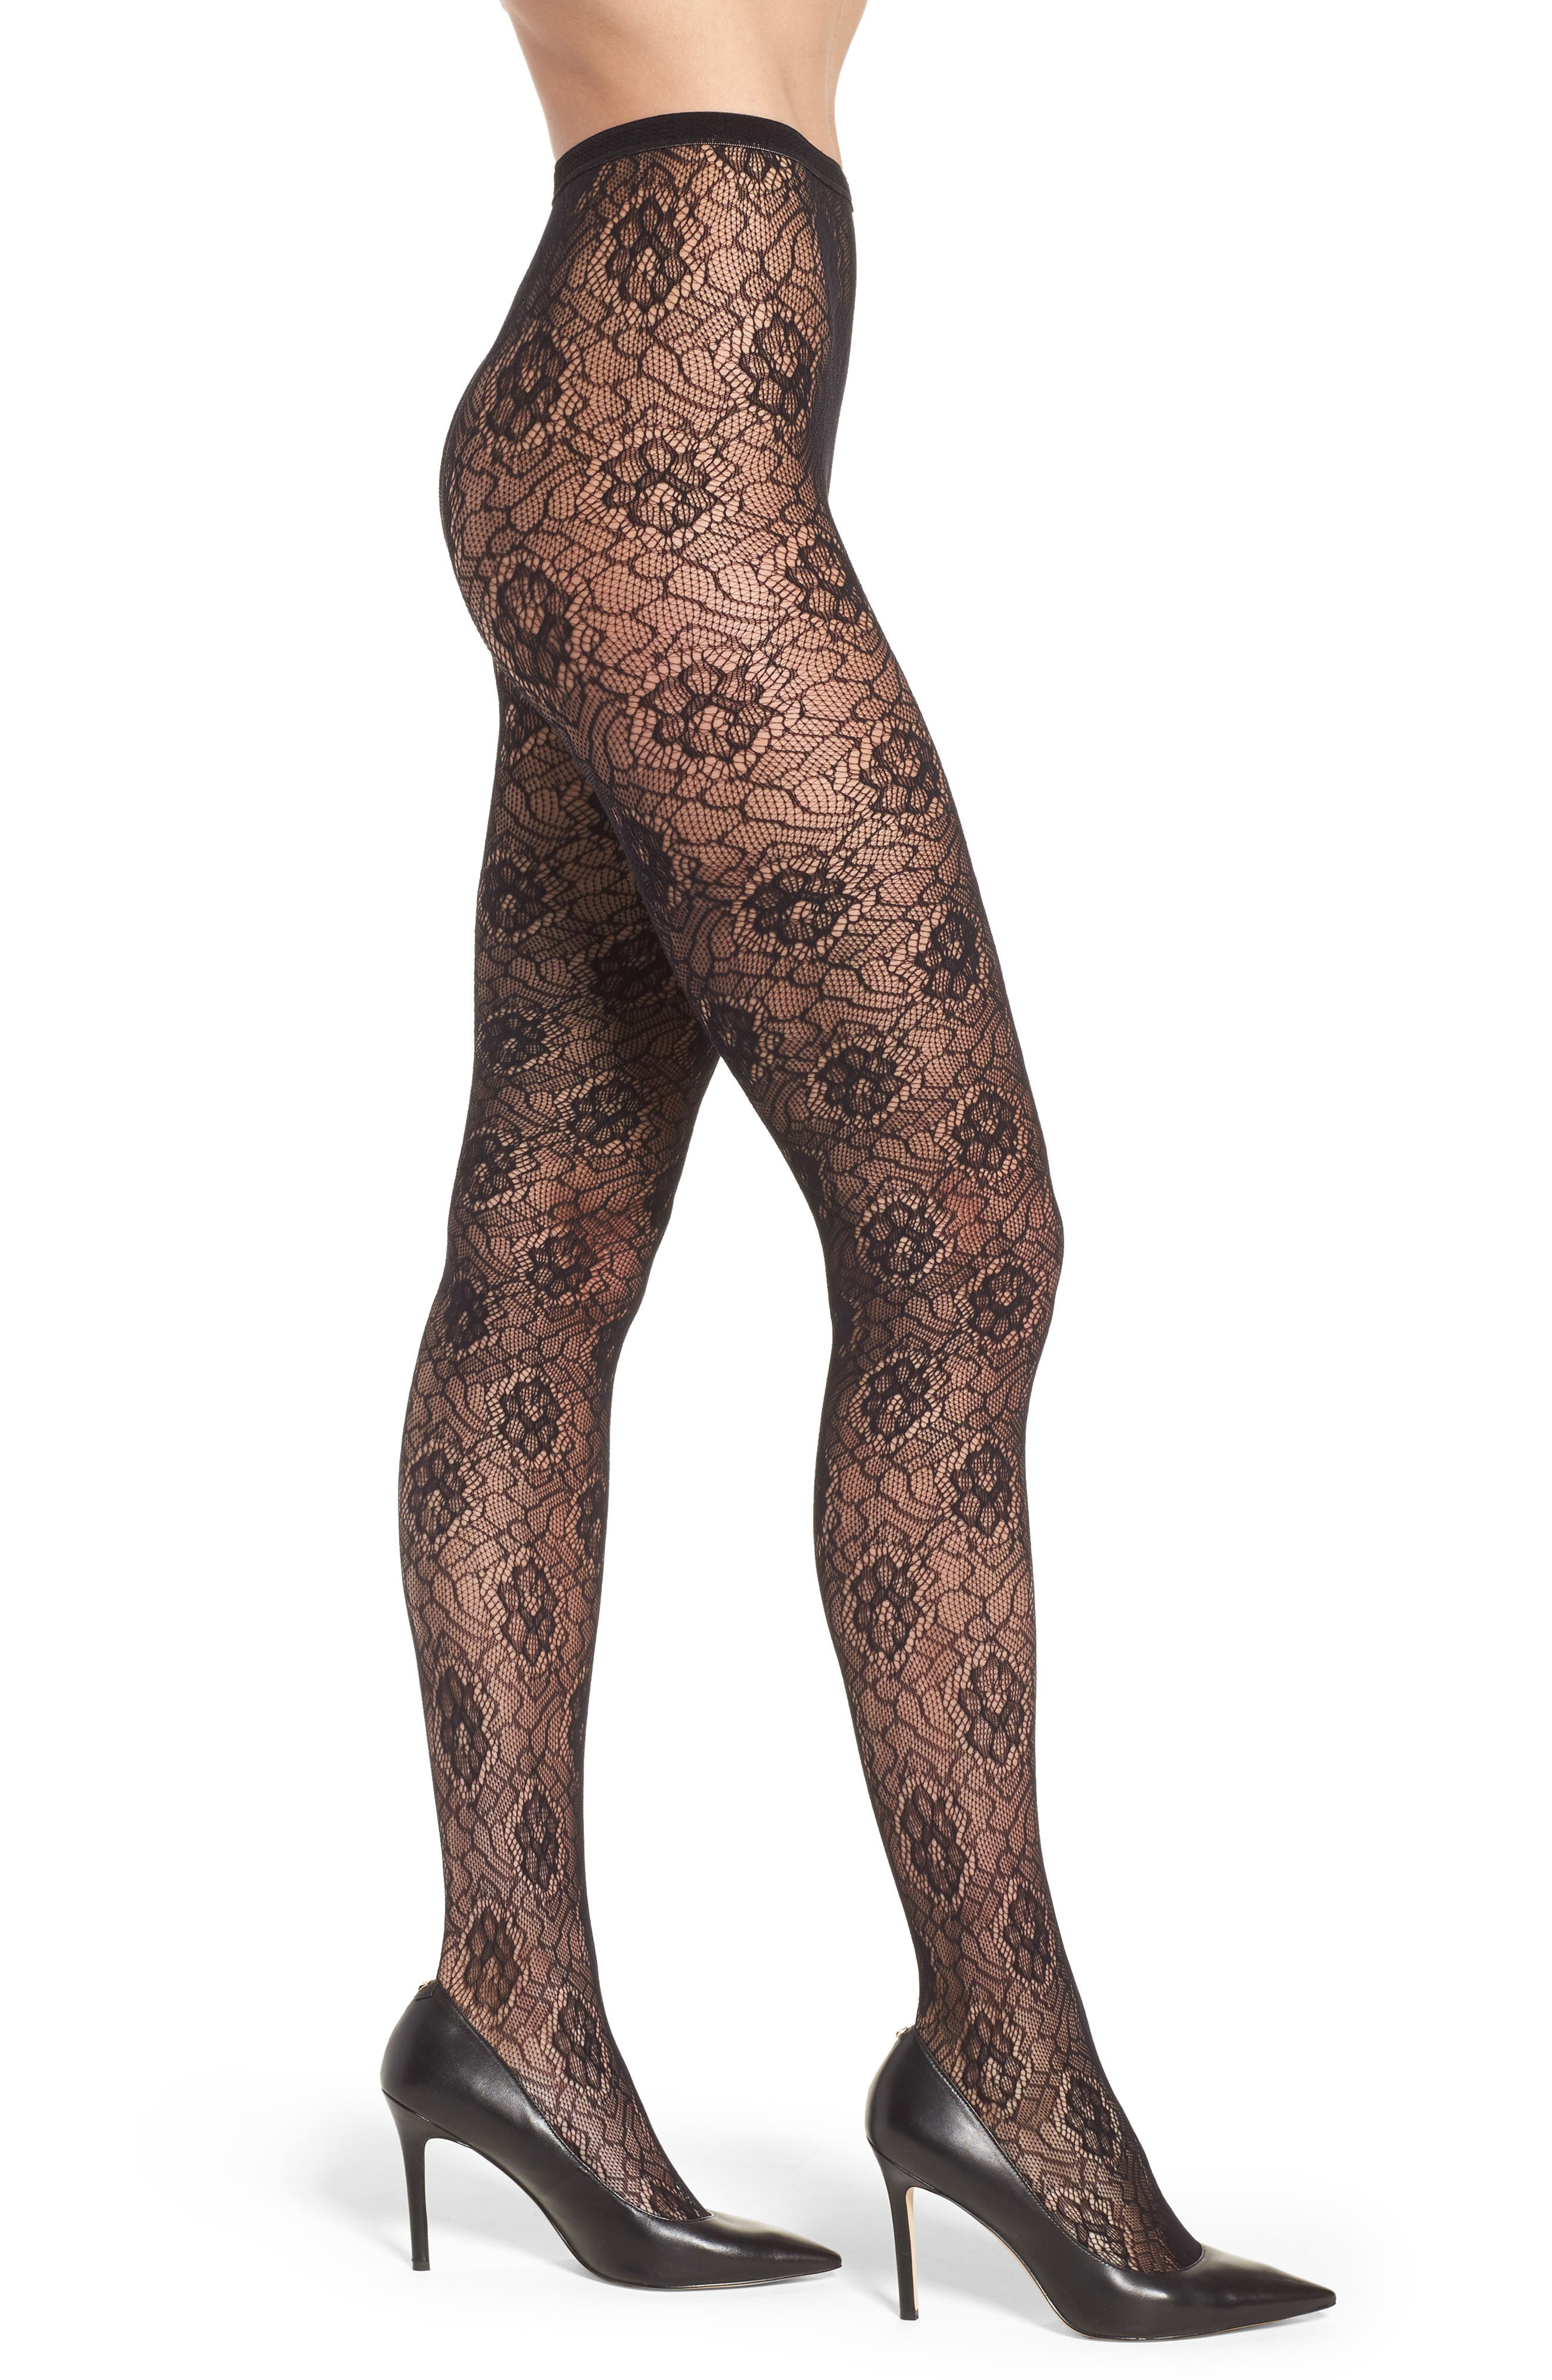 Large Rose Tights,                         Main,                         color, 001